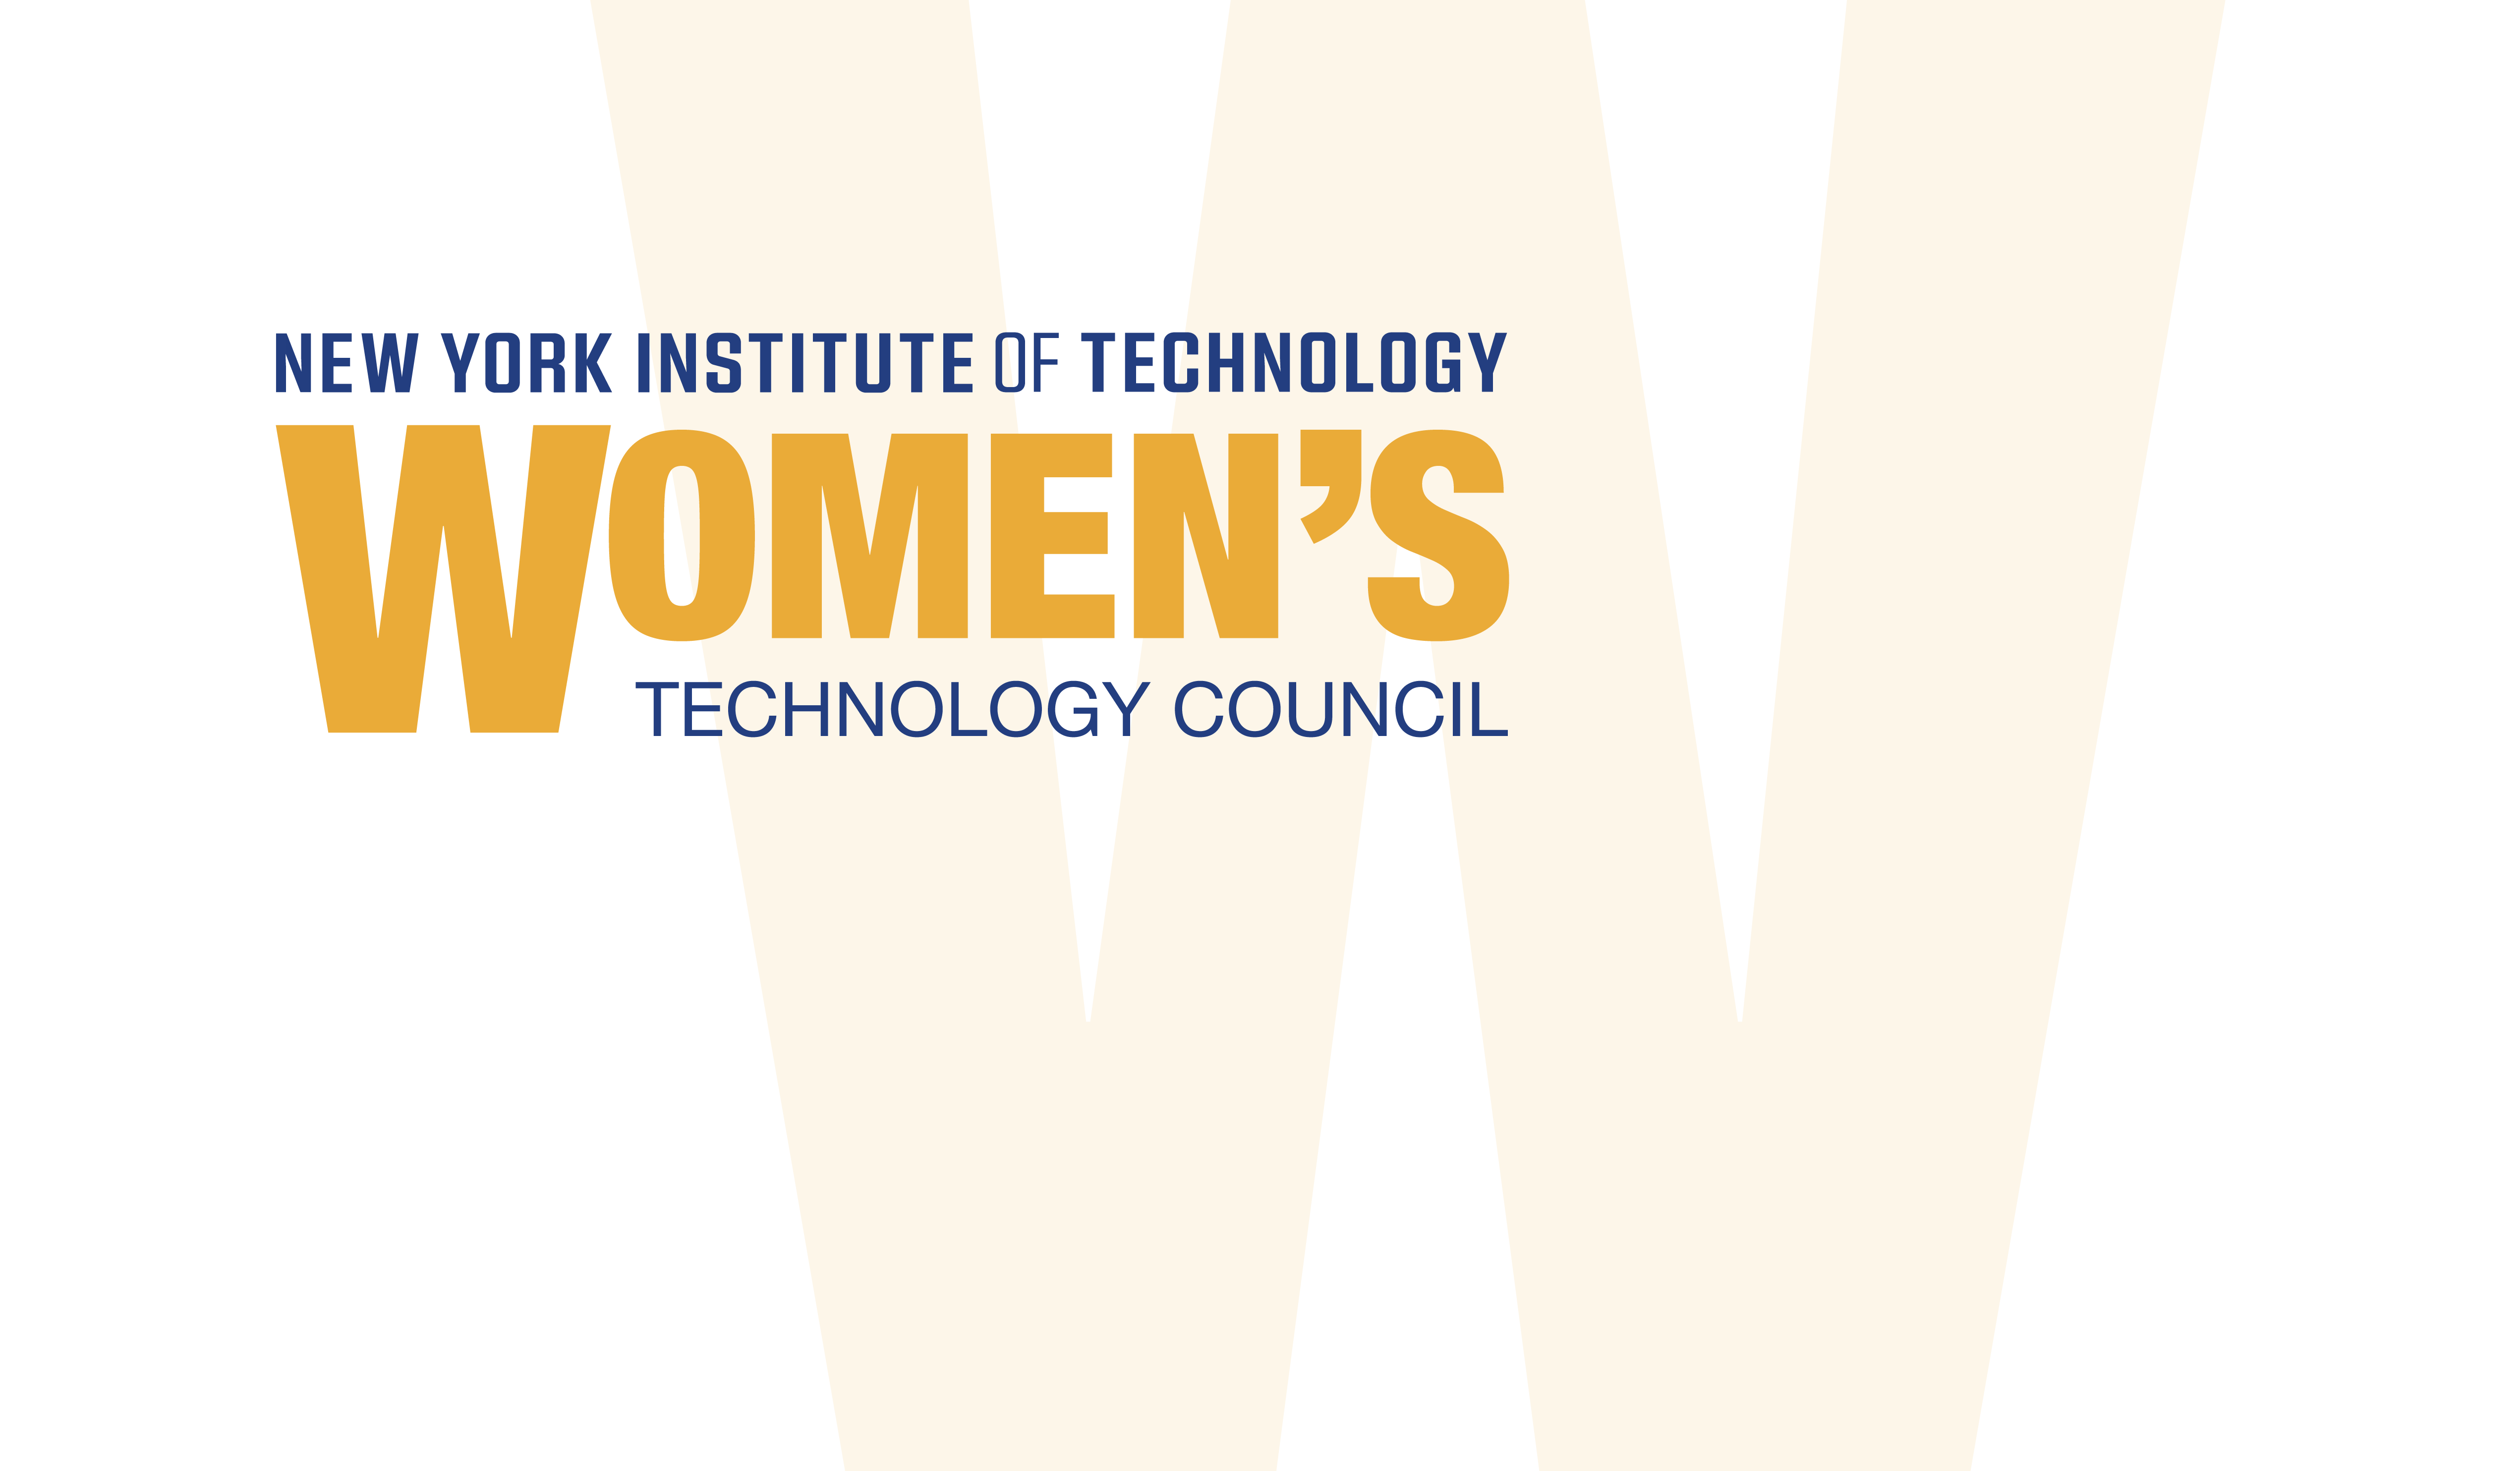 New York Institute of Technology: Women's Technology Council